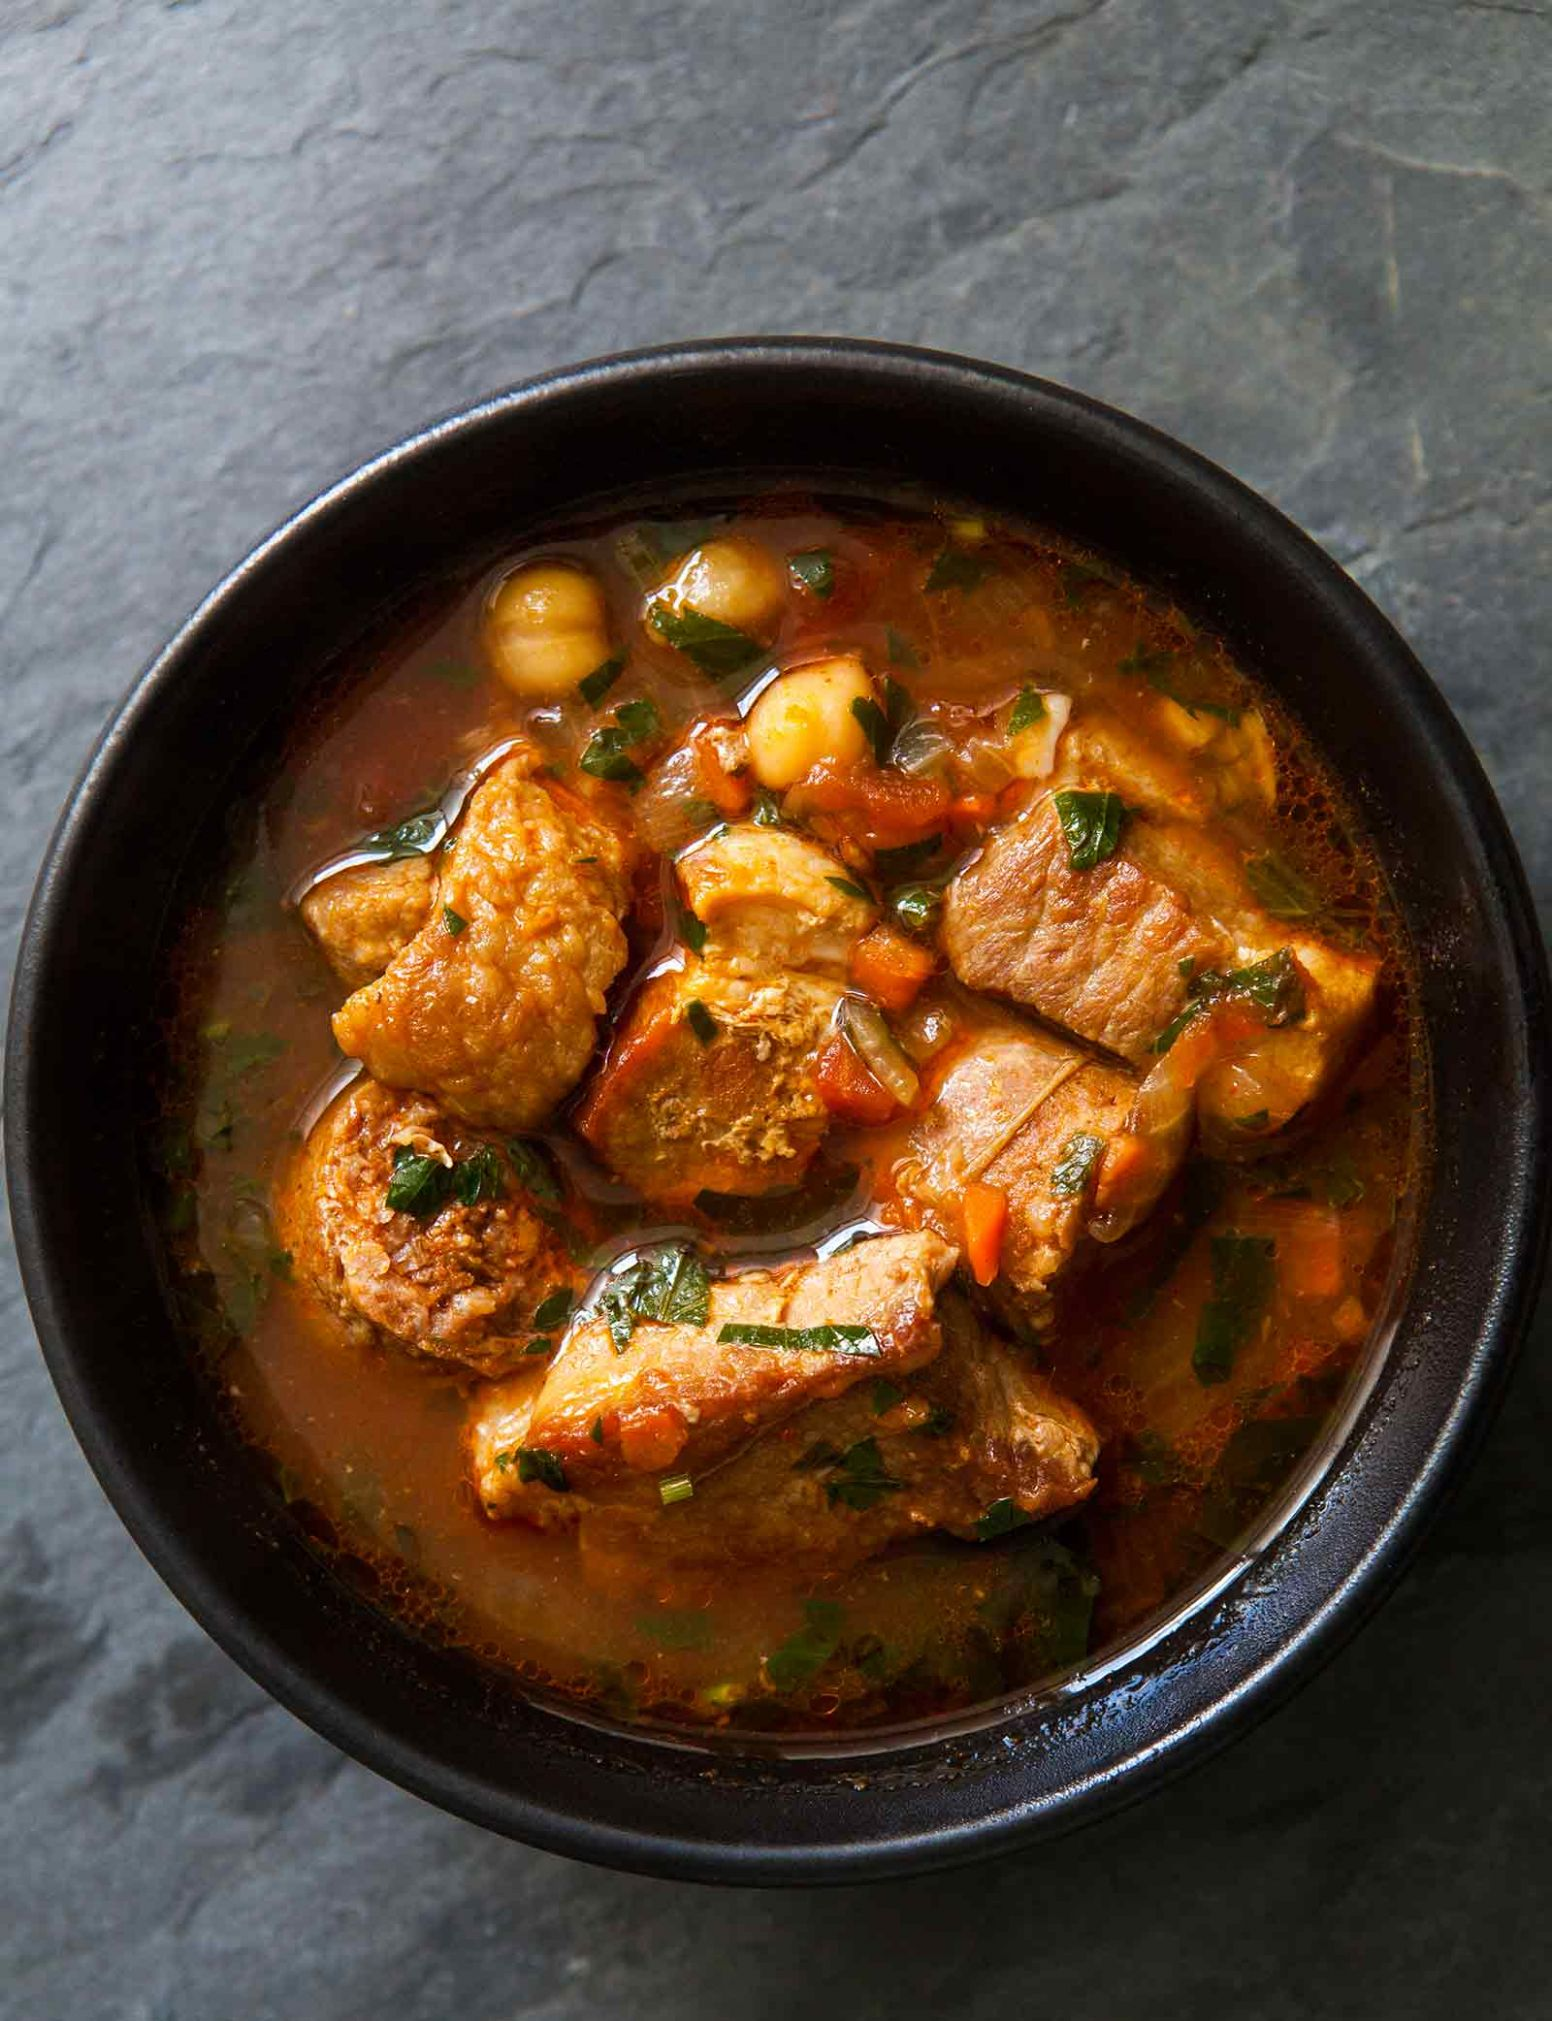 Spicy Pork Stew with Chickpeas and Sausage - Recipes Pork Stew Meat